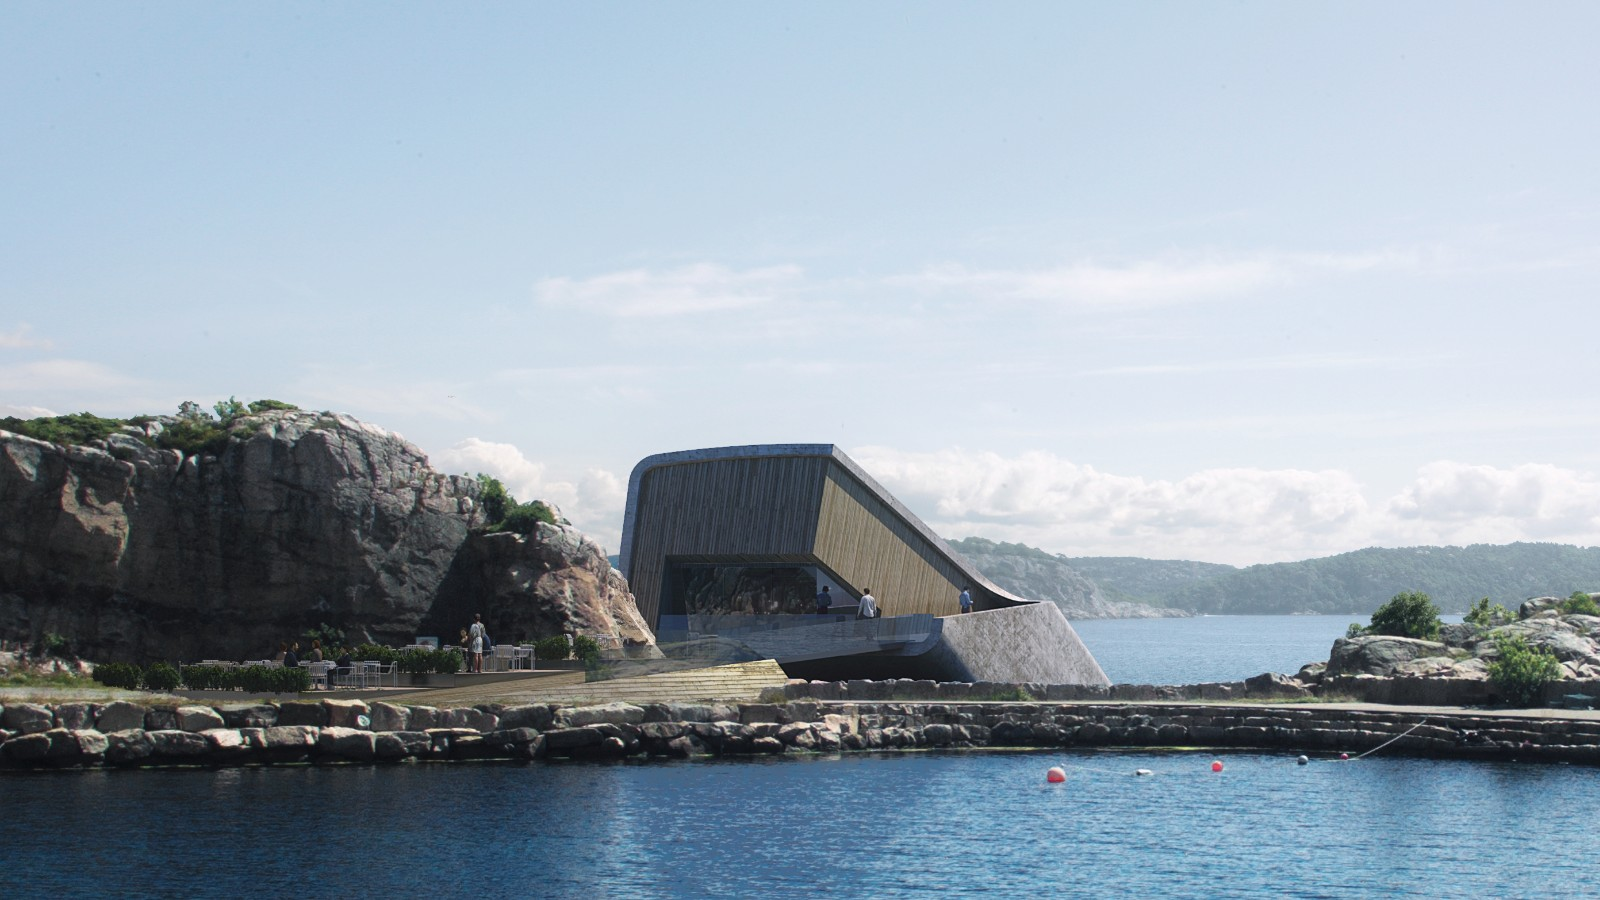 underwater restaurant Norwegian Architecture Firm Reveals Project for First Underwater Restaurant 1 Norwegian Architecture Firm Reveals Project for First Underwater Restaurant